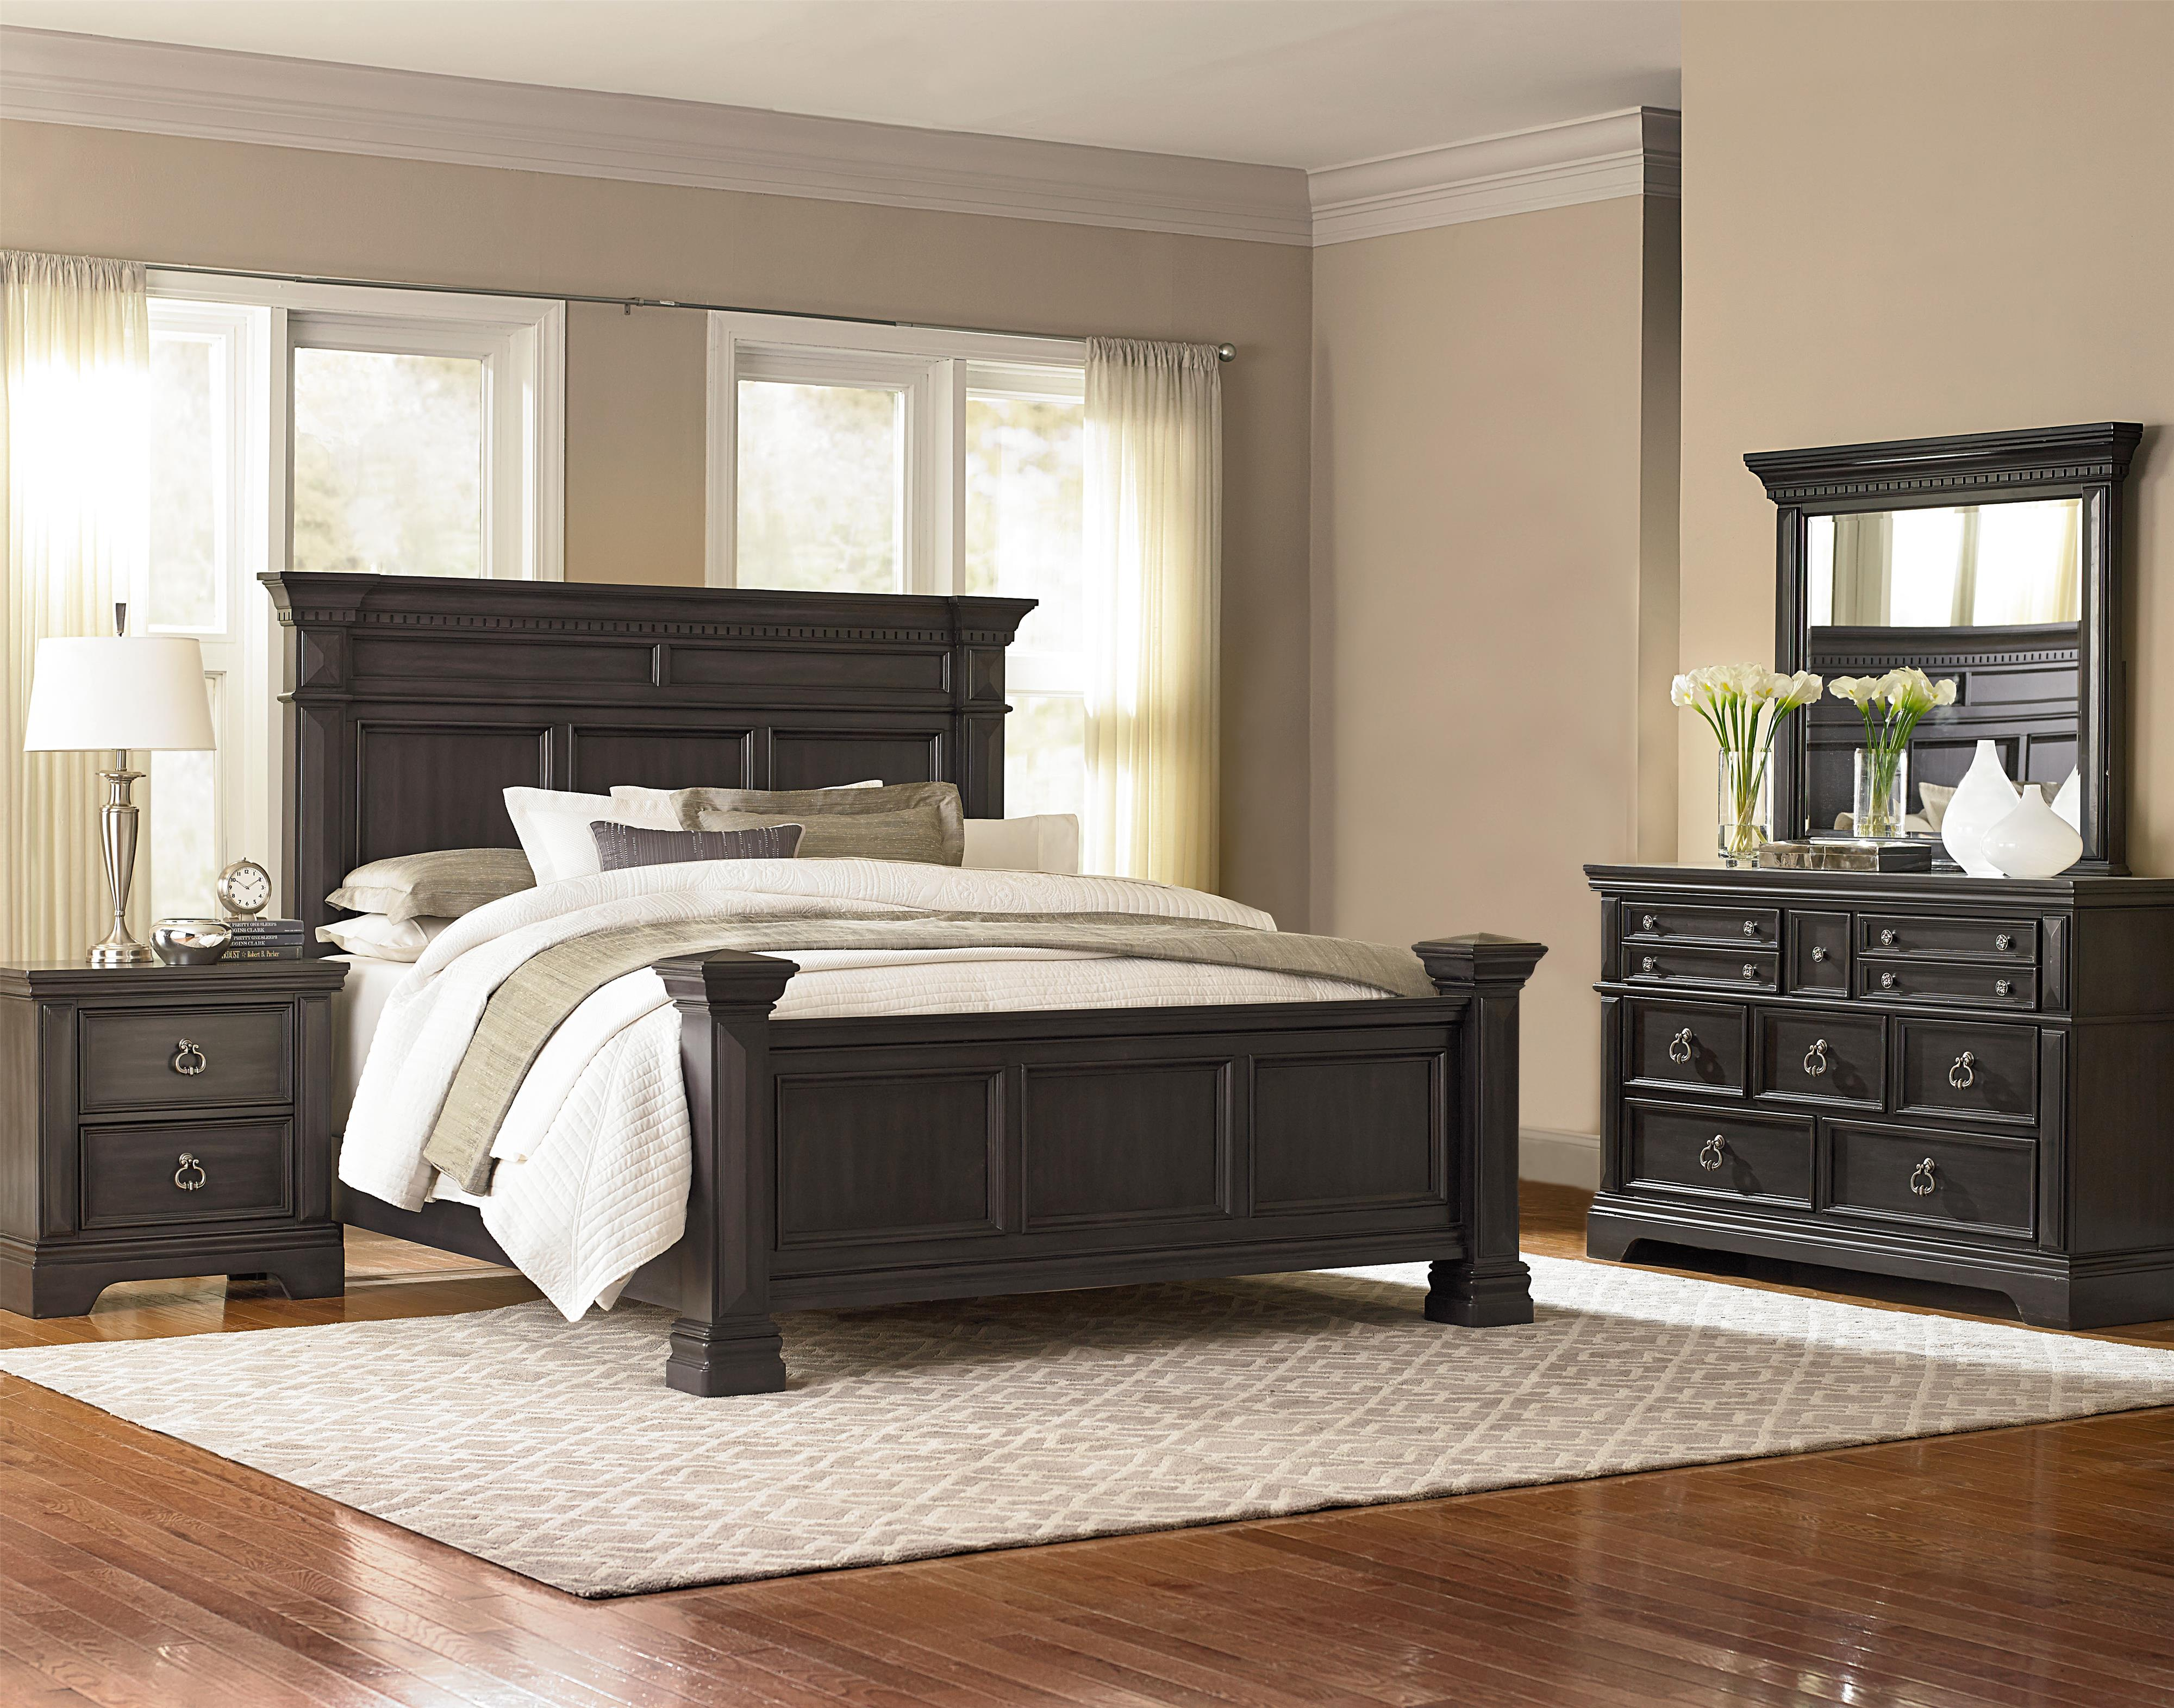 Standard Furniture Garrison Queen Bedroom Group - Item Number: 86300 Q Bedroom Group 1